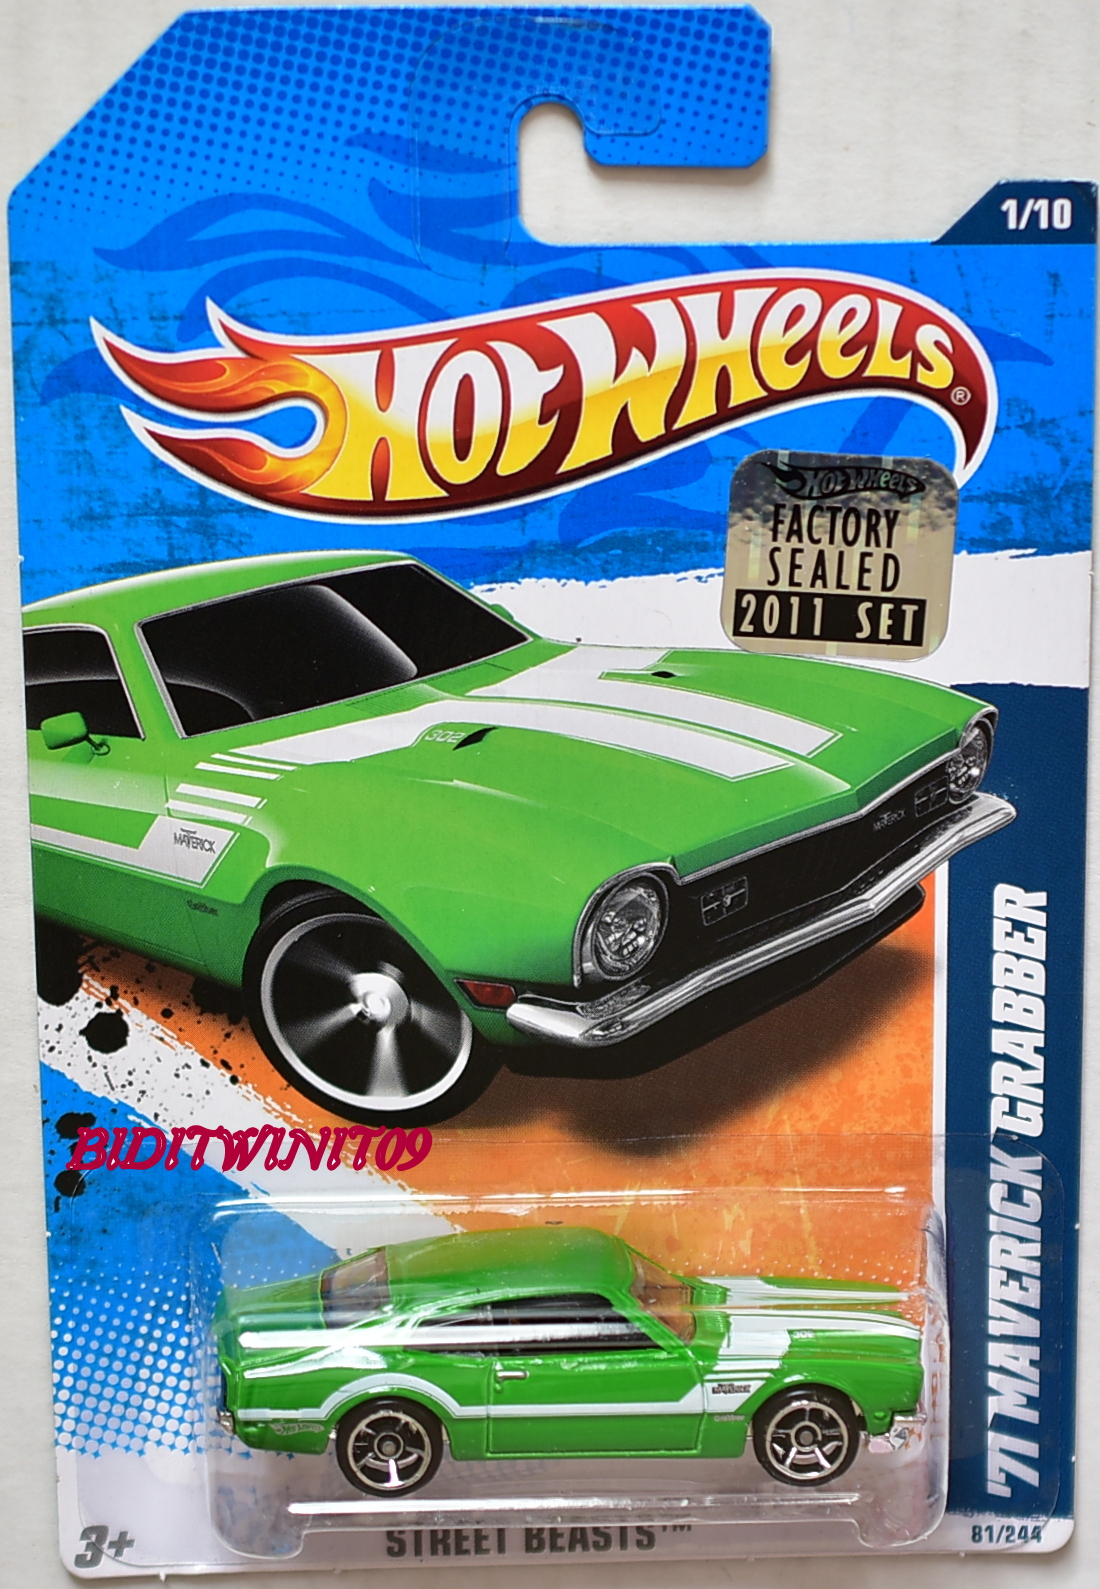 HOT WHEELS 2011 STREET BEASTS '71 MAVERICK CRABBER GREEN FACTORY SEALED